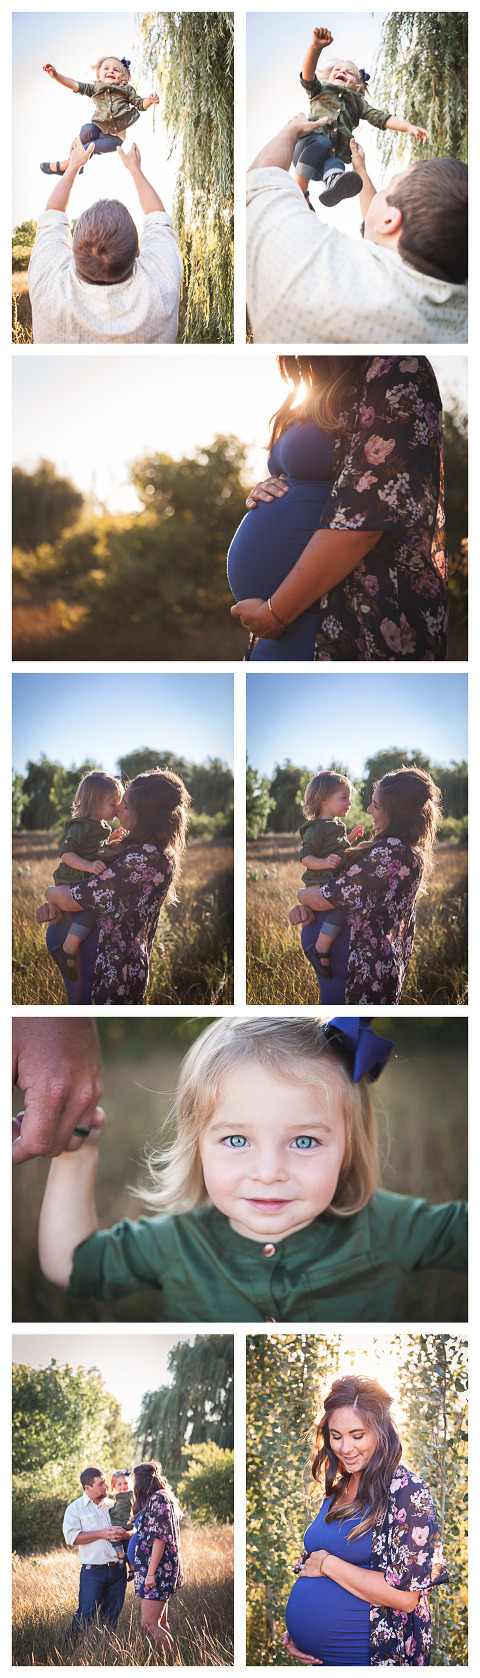 Rachel's baby bump, golden hour family and maternity lifestyle session in Ellensburg WA by Hailey Haberman